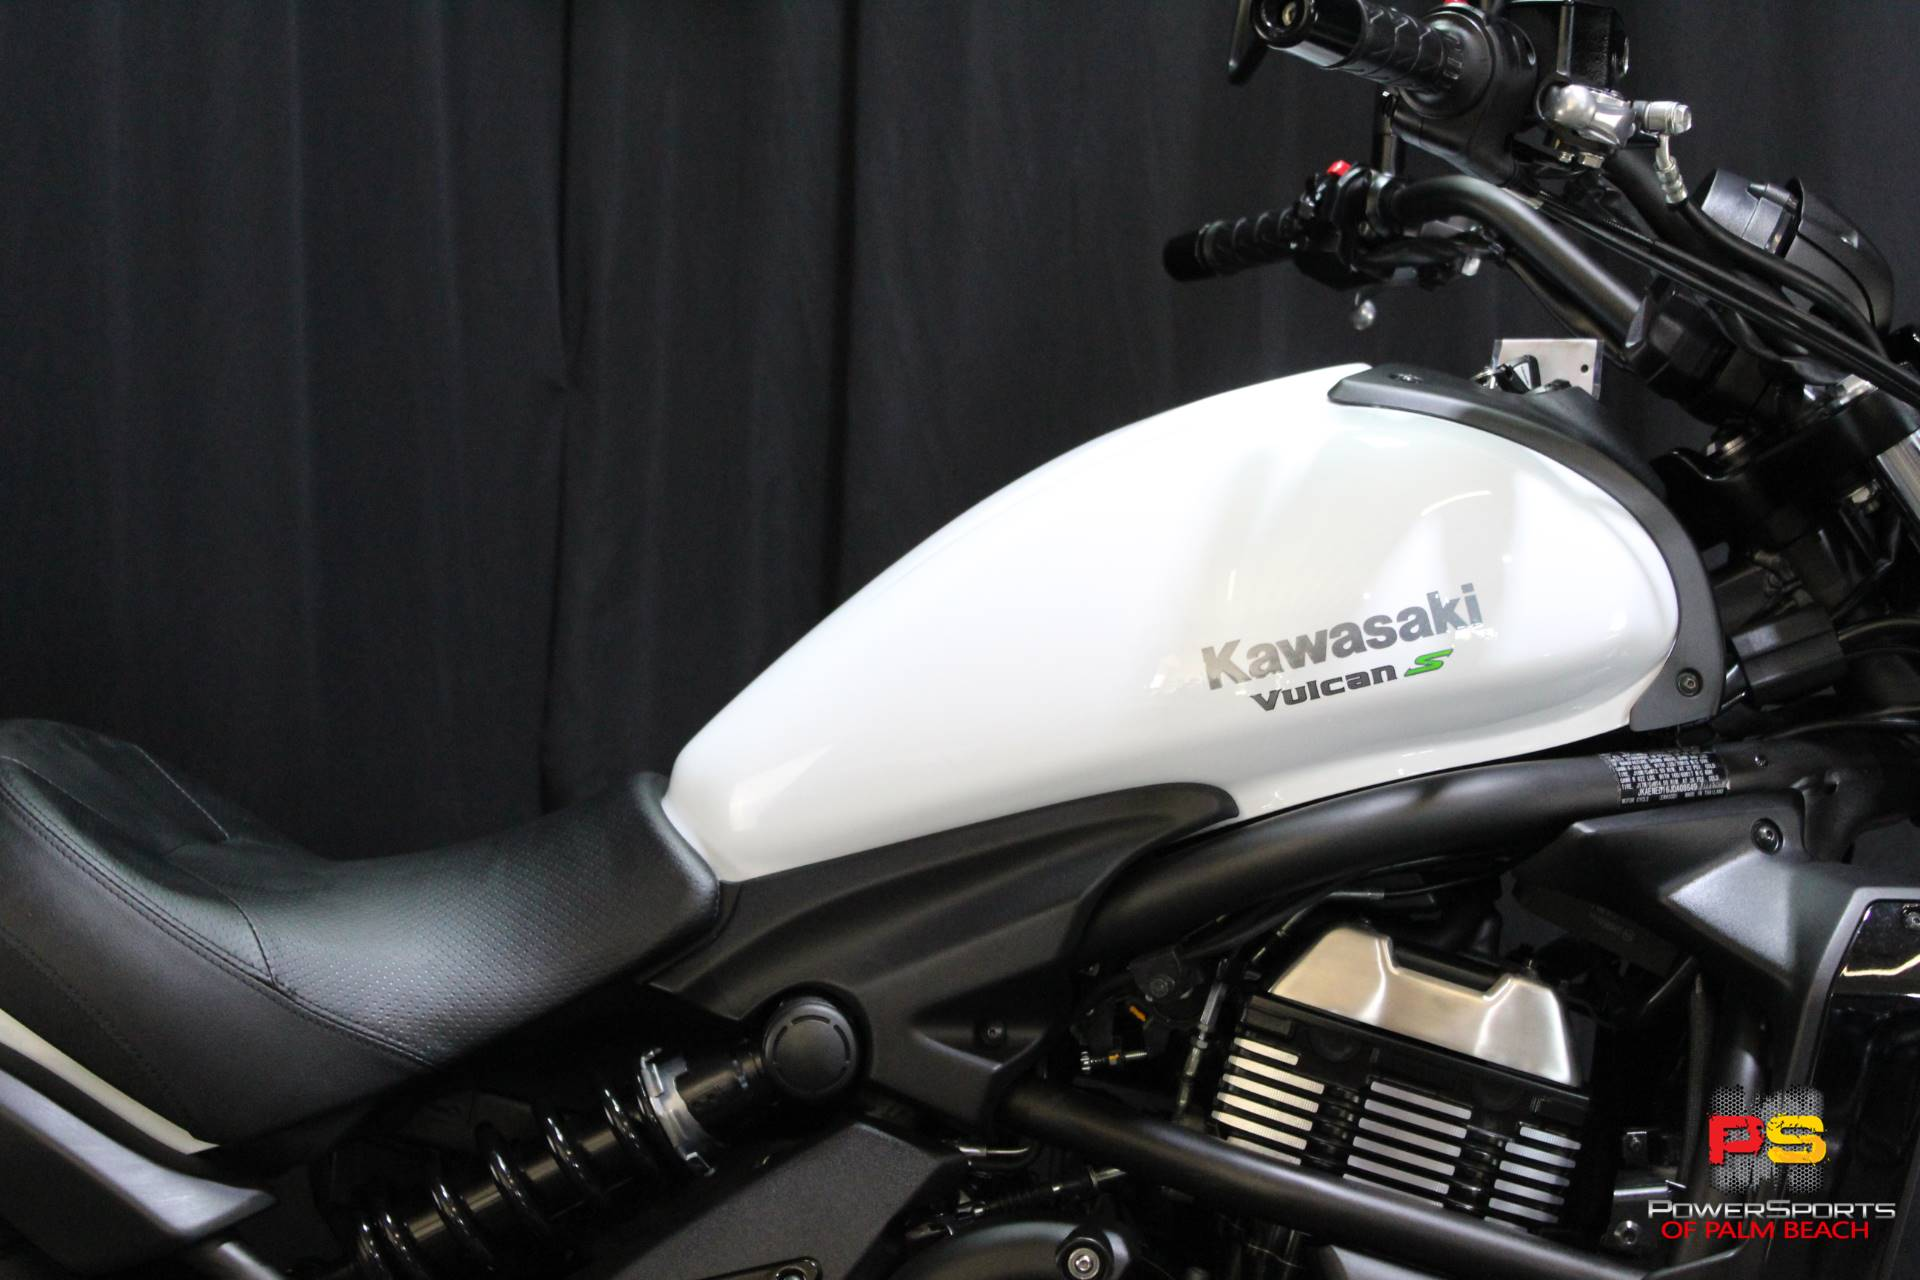 2018 Kawasaki Vulcan S ABS in Lake Park, Florida - Photo 5